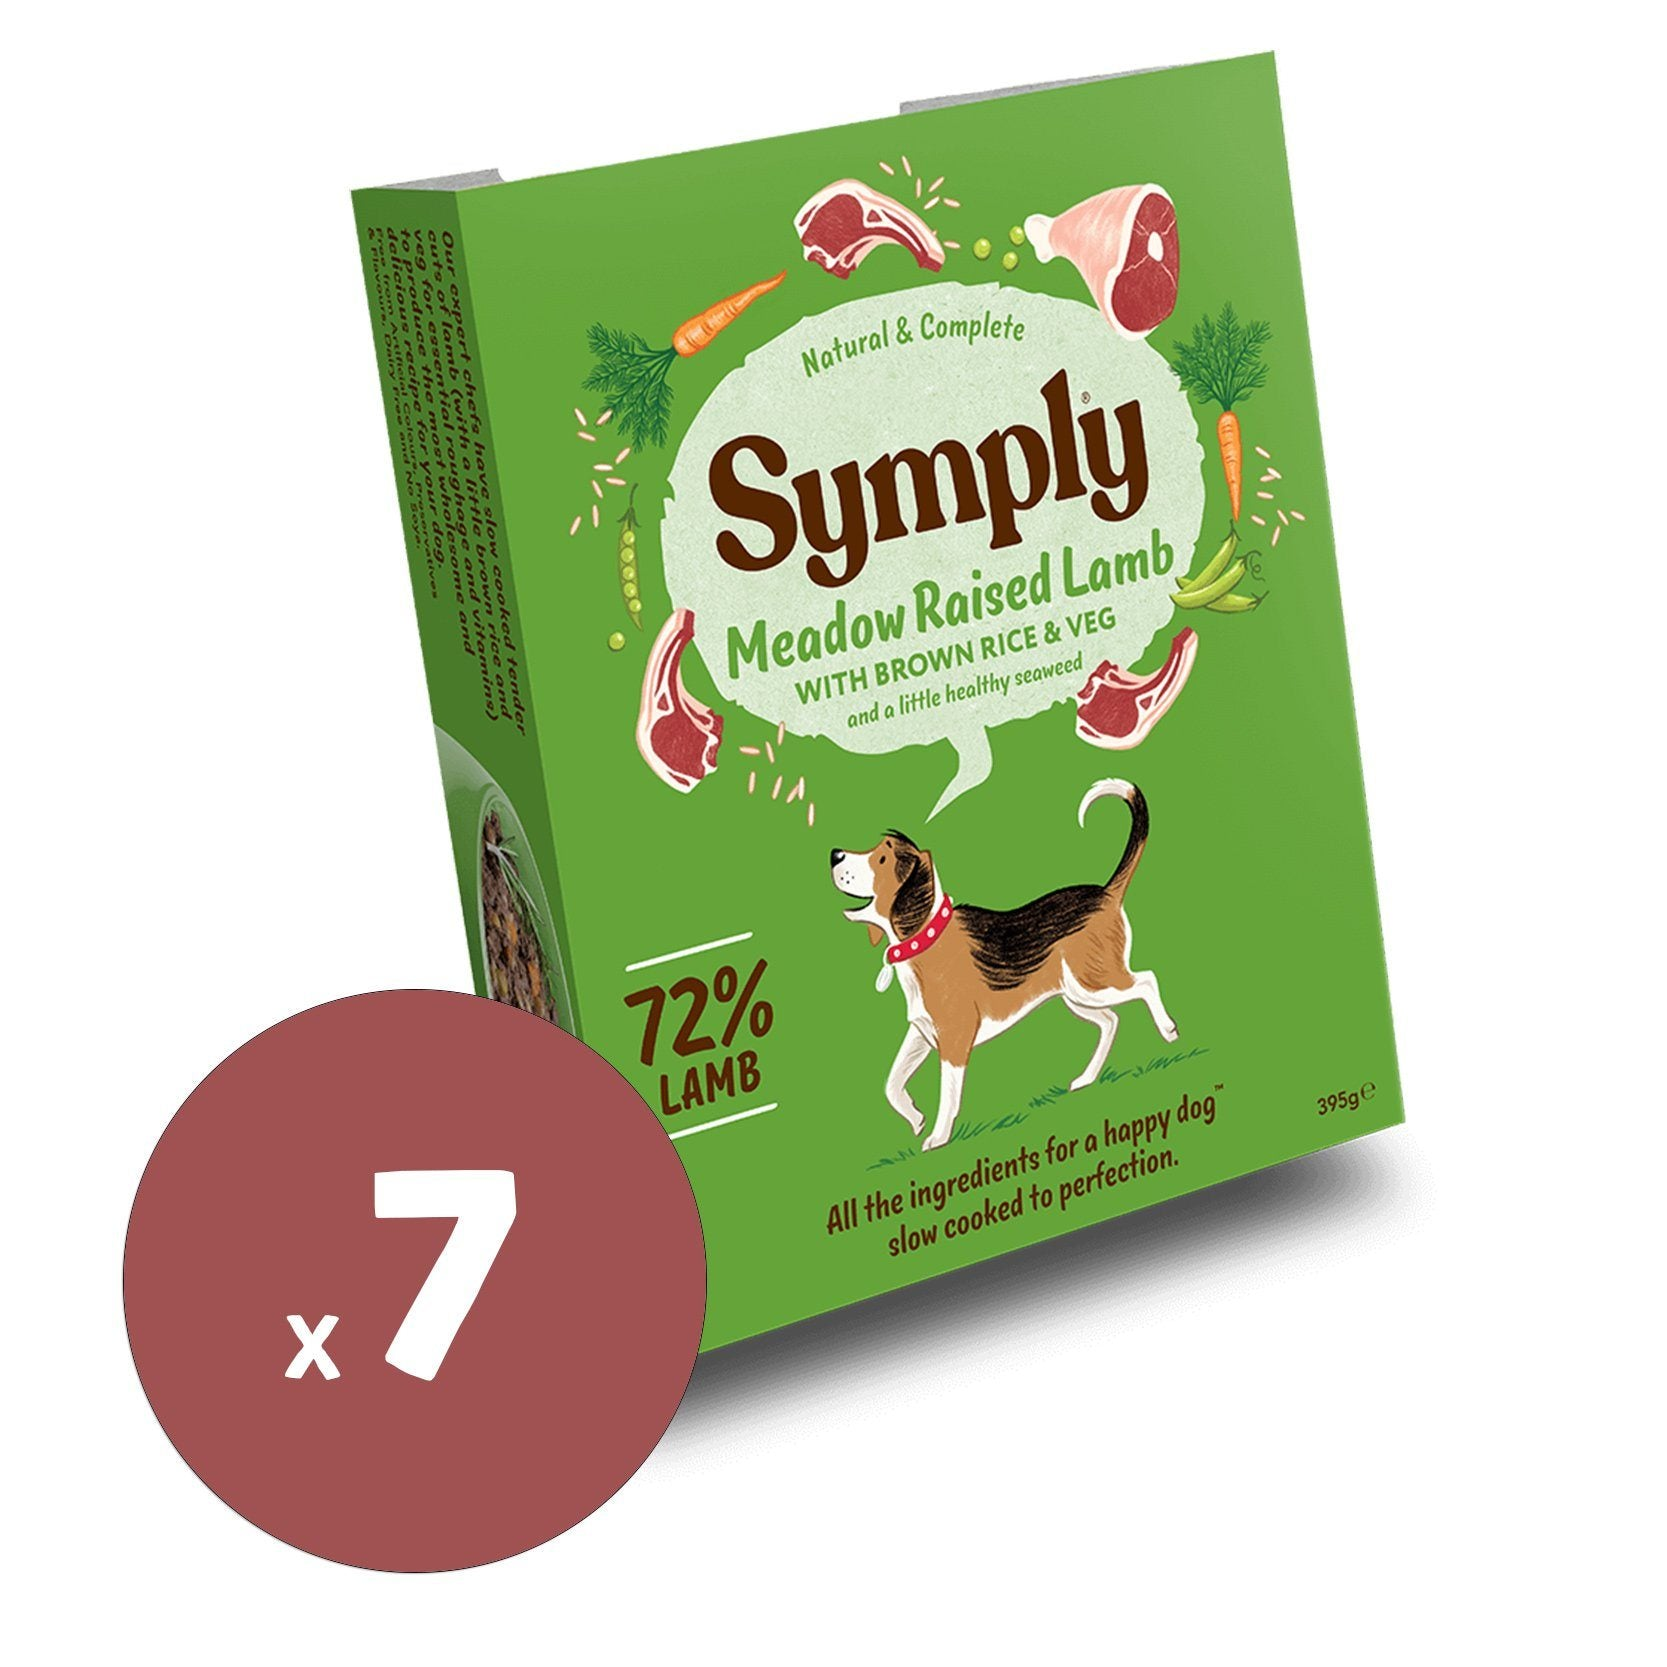 Symply Wet Food Meadow Raised Lamb 395x7 Dog Food - Wet Symply